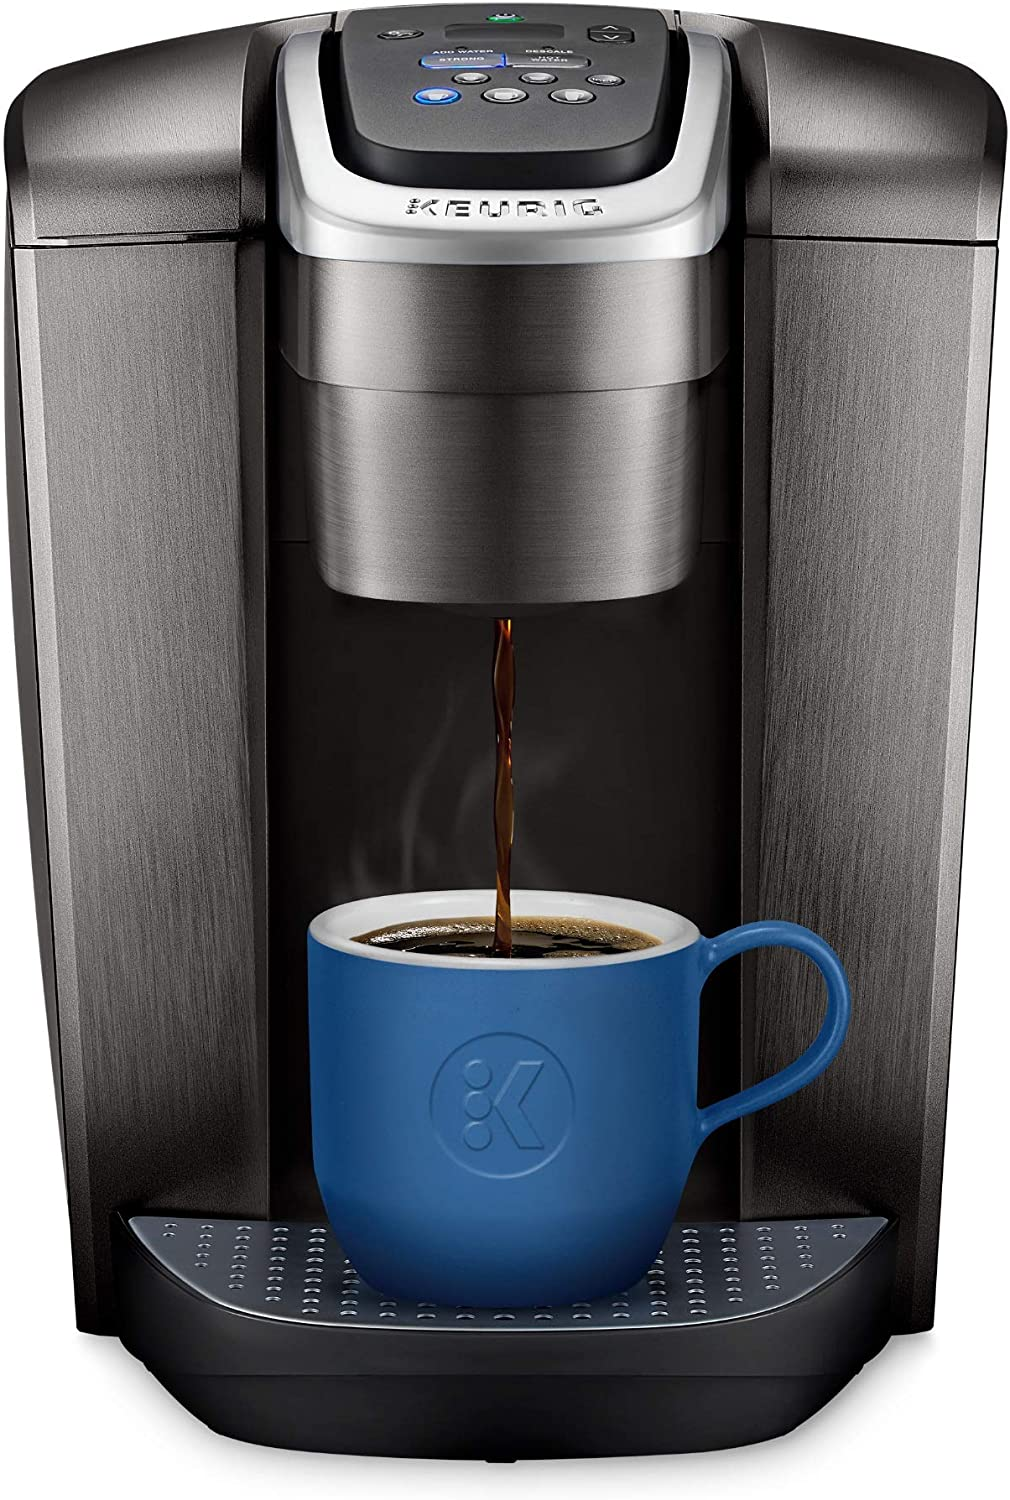 Keurig K-Elite Coffee Maker, Single Serve K-Cup Pod Coffee Brewer, With Iced Coffee Capability, Brushed Slate (Renewed)